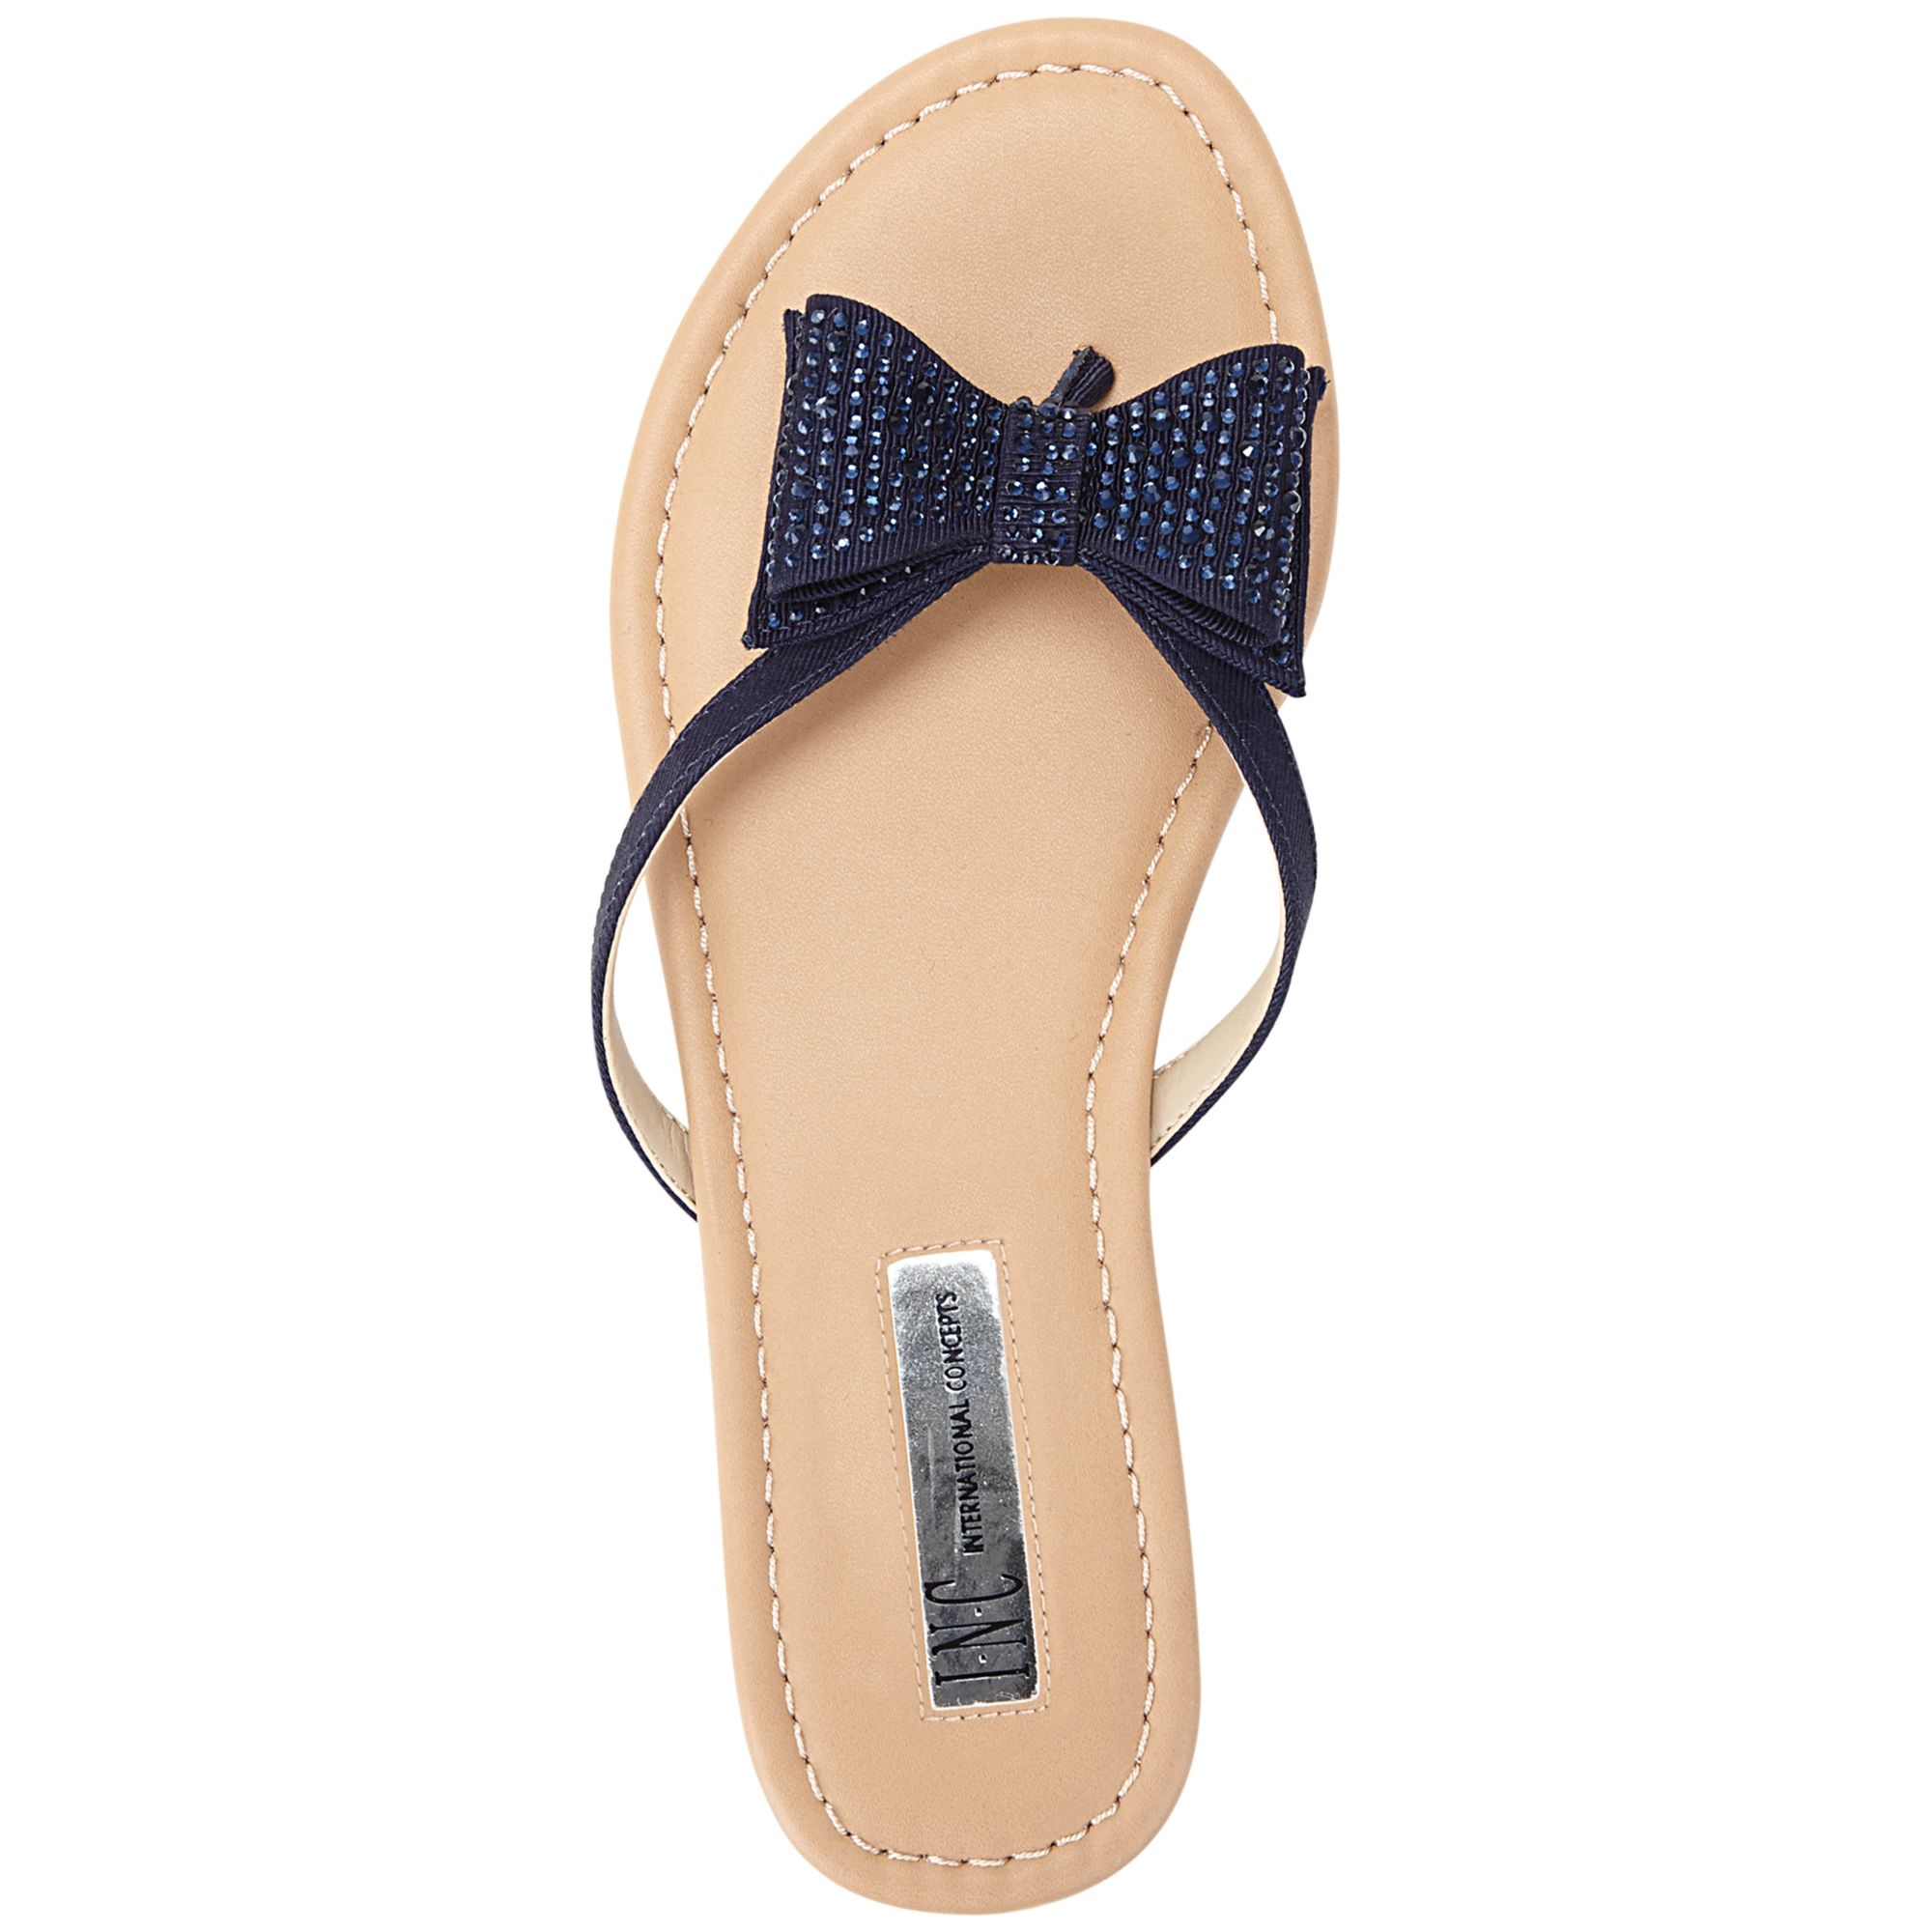 64b87a719 INC International Concepts Womens Maey Bow Thong Sandals in Blue - Lyst